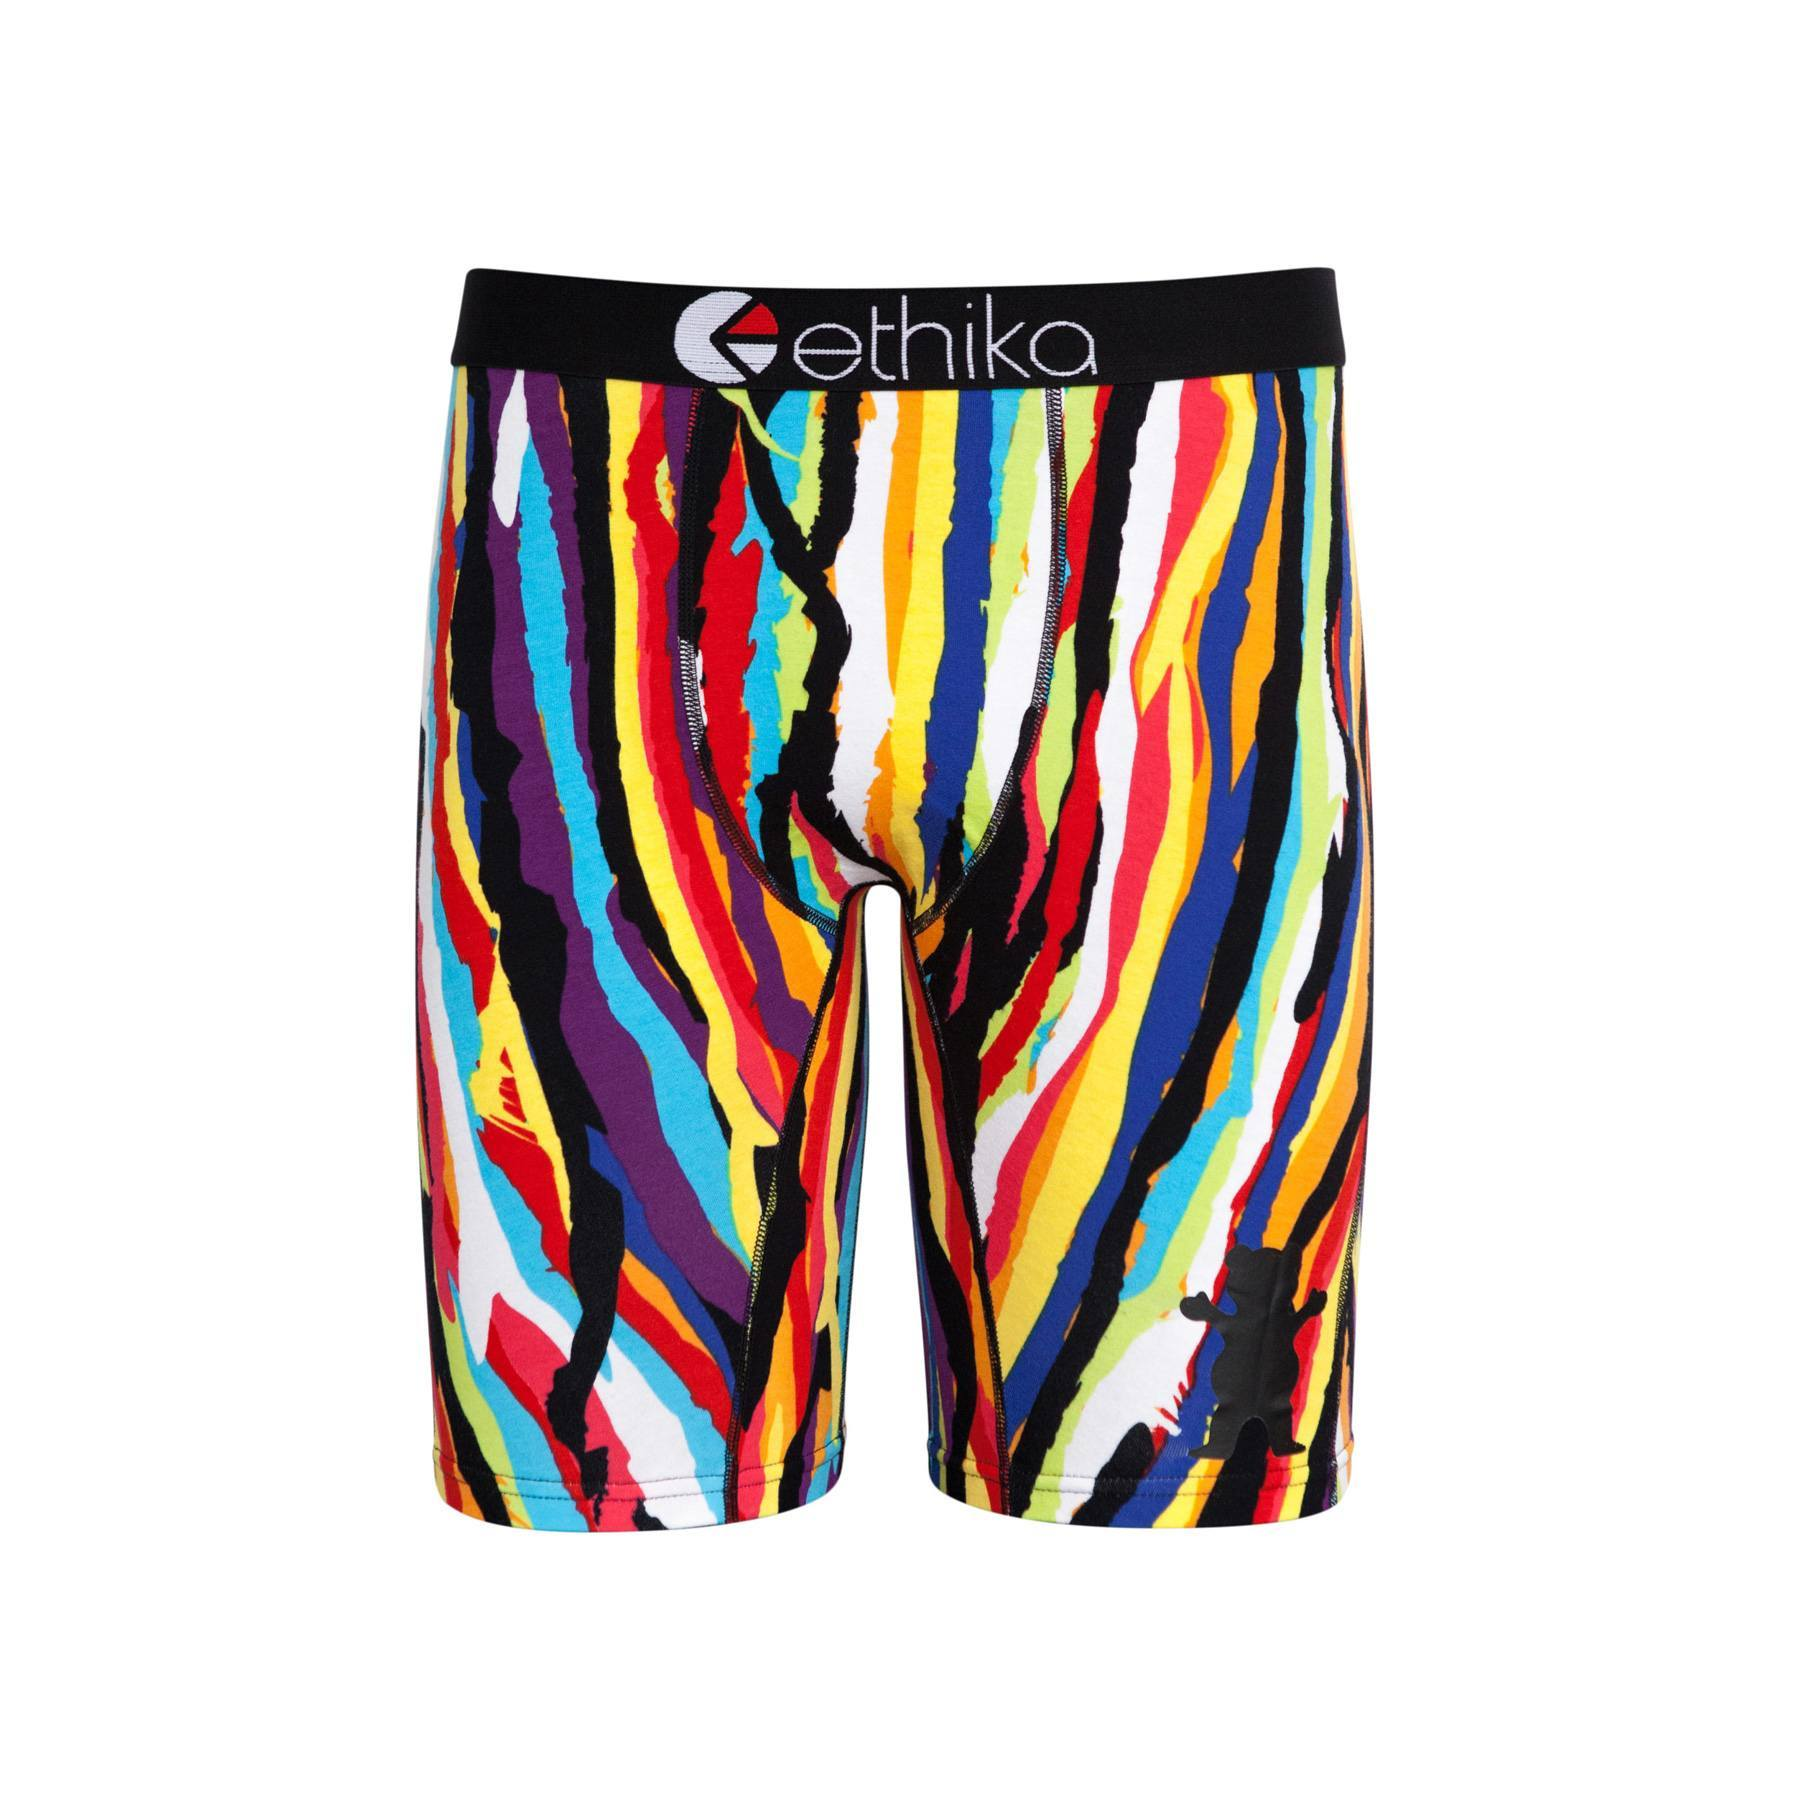 Ethika Grizzly Gustavo-Assorted